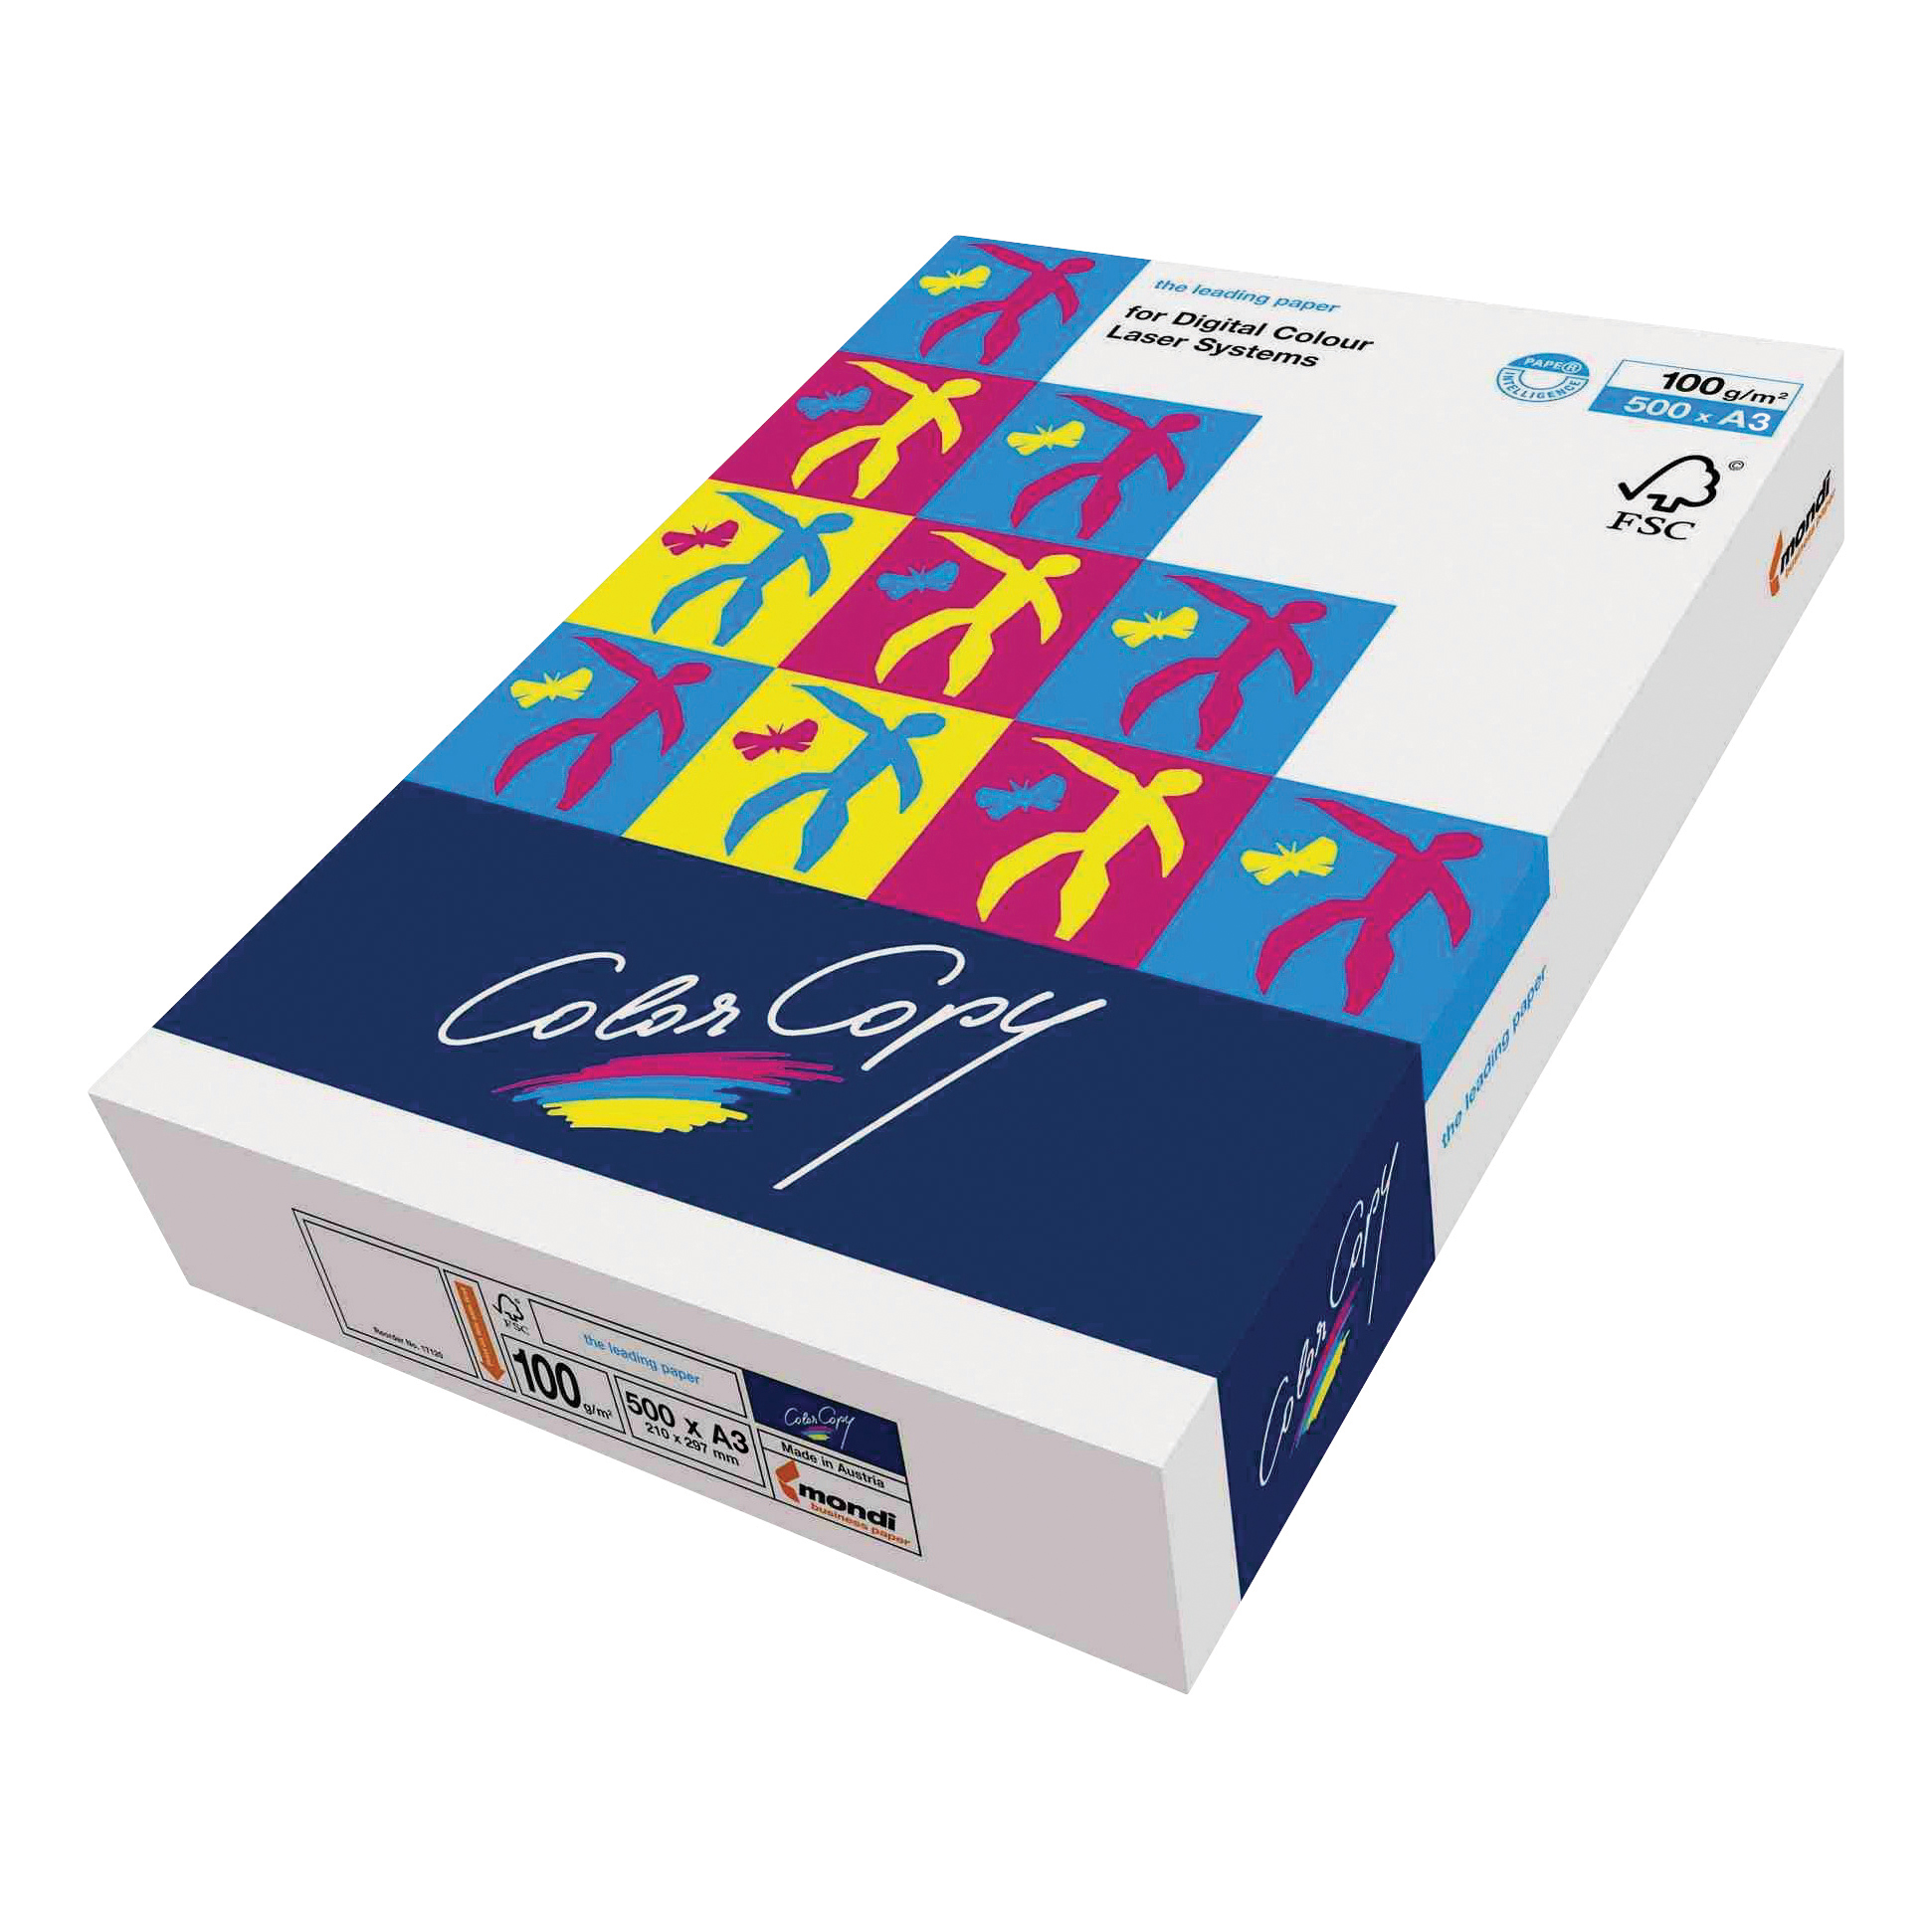 Color Copy Paper Premium Super Smooth FSC Ream-Wrapped 100gsm A3 White Ref CCW1024 [500 Sheets]